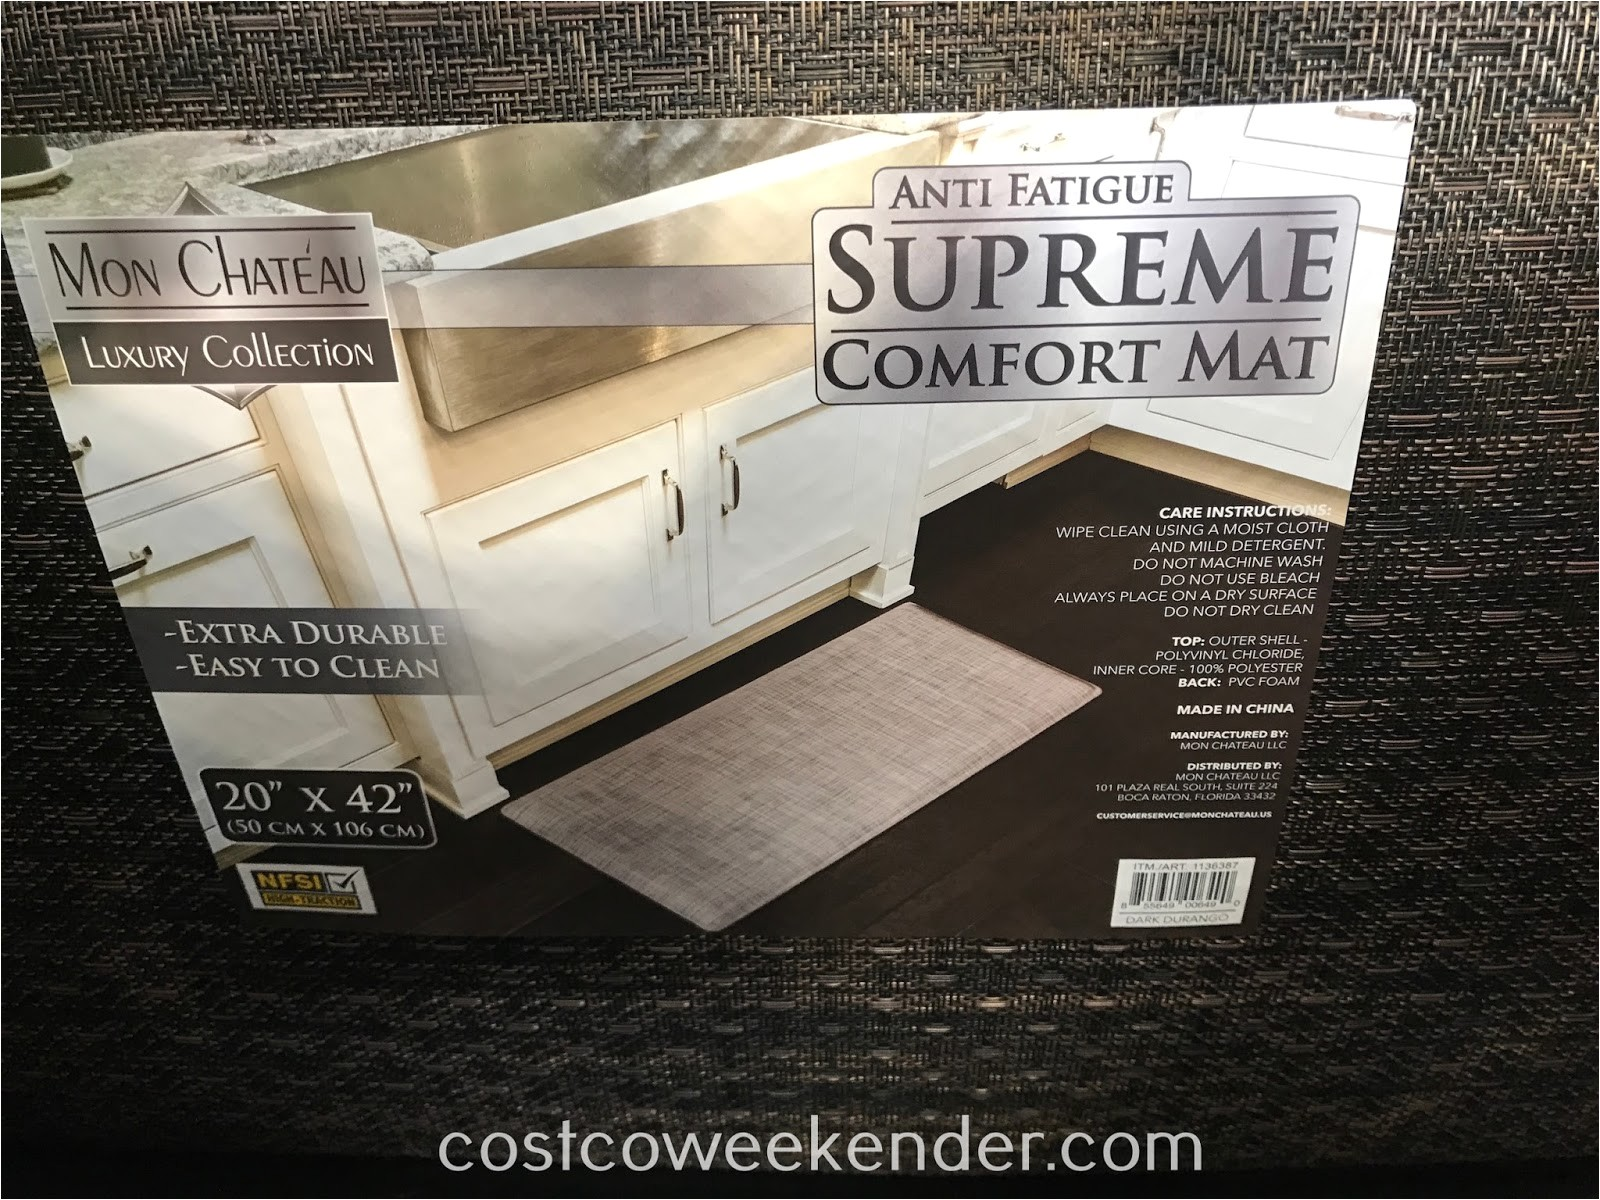 Mon Chateau Anti Fatigue Mat 20×42 May 2017 Costco Weekender